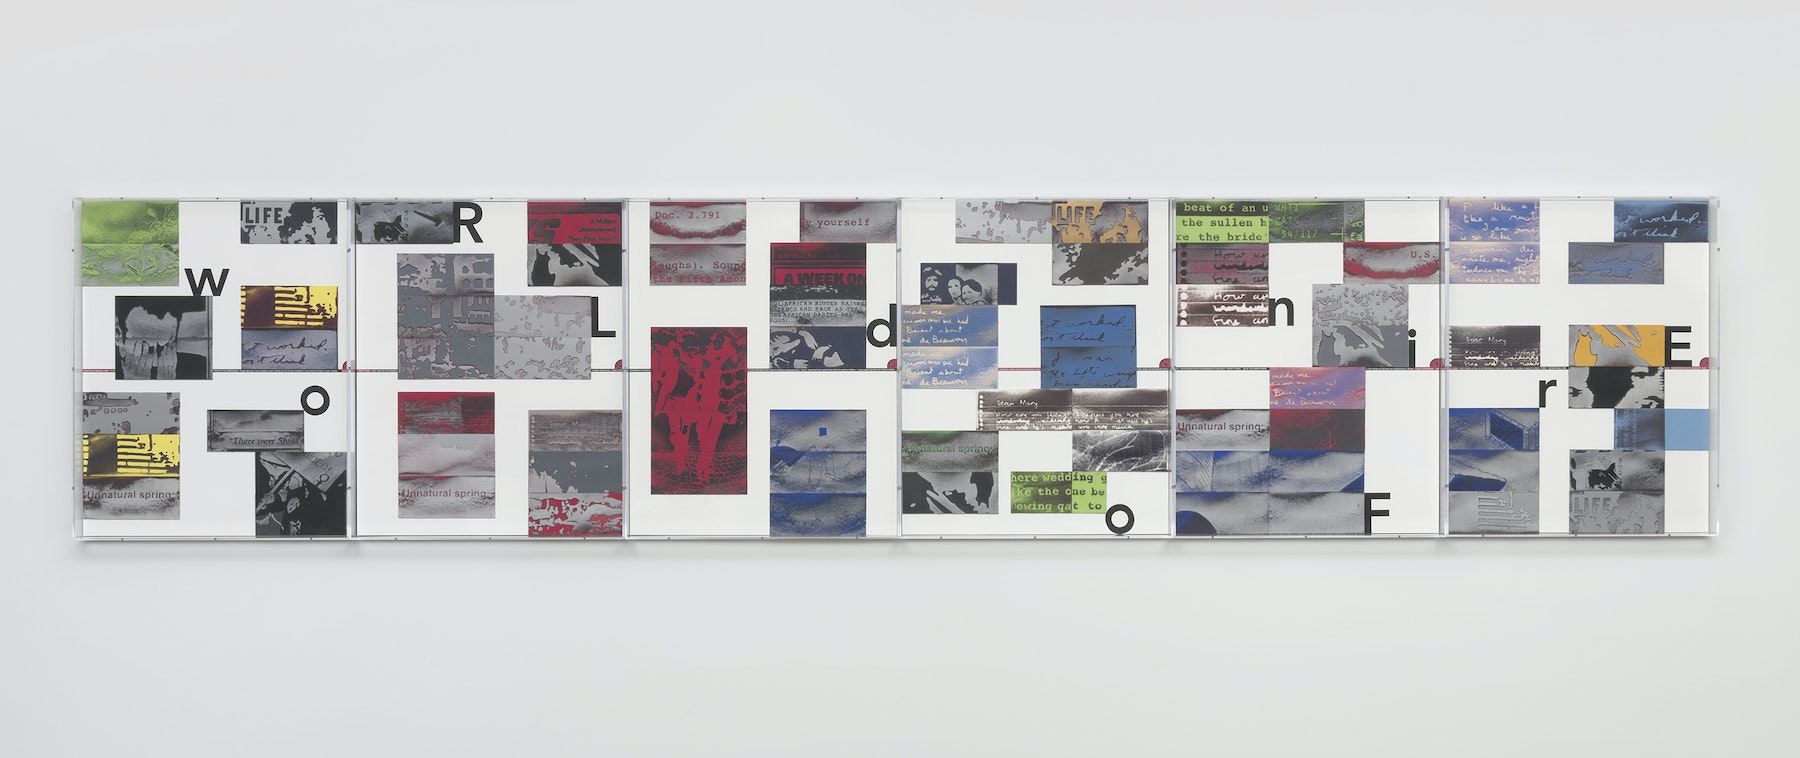 """Mary Kelly """"World on Fire Timeline,"""" 2020 Compressed lint, archival mount board, paper, ink, acrylic box frames 40.5 x 195 x 3.25"""" [HxWxD] (102.87 x 495.3 x 8.26 cm) Inventory #KEL164 Photo credit: Robert Wedemeyer"""